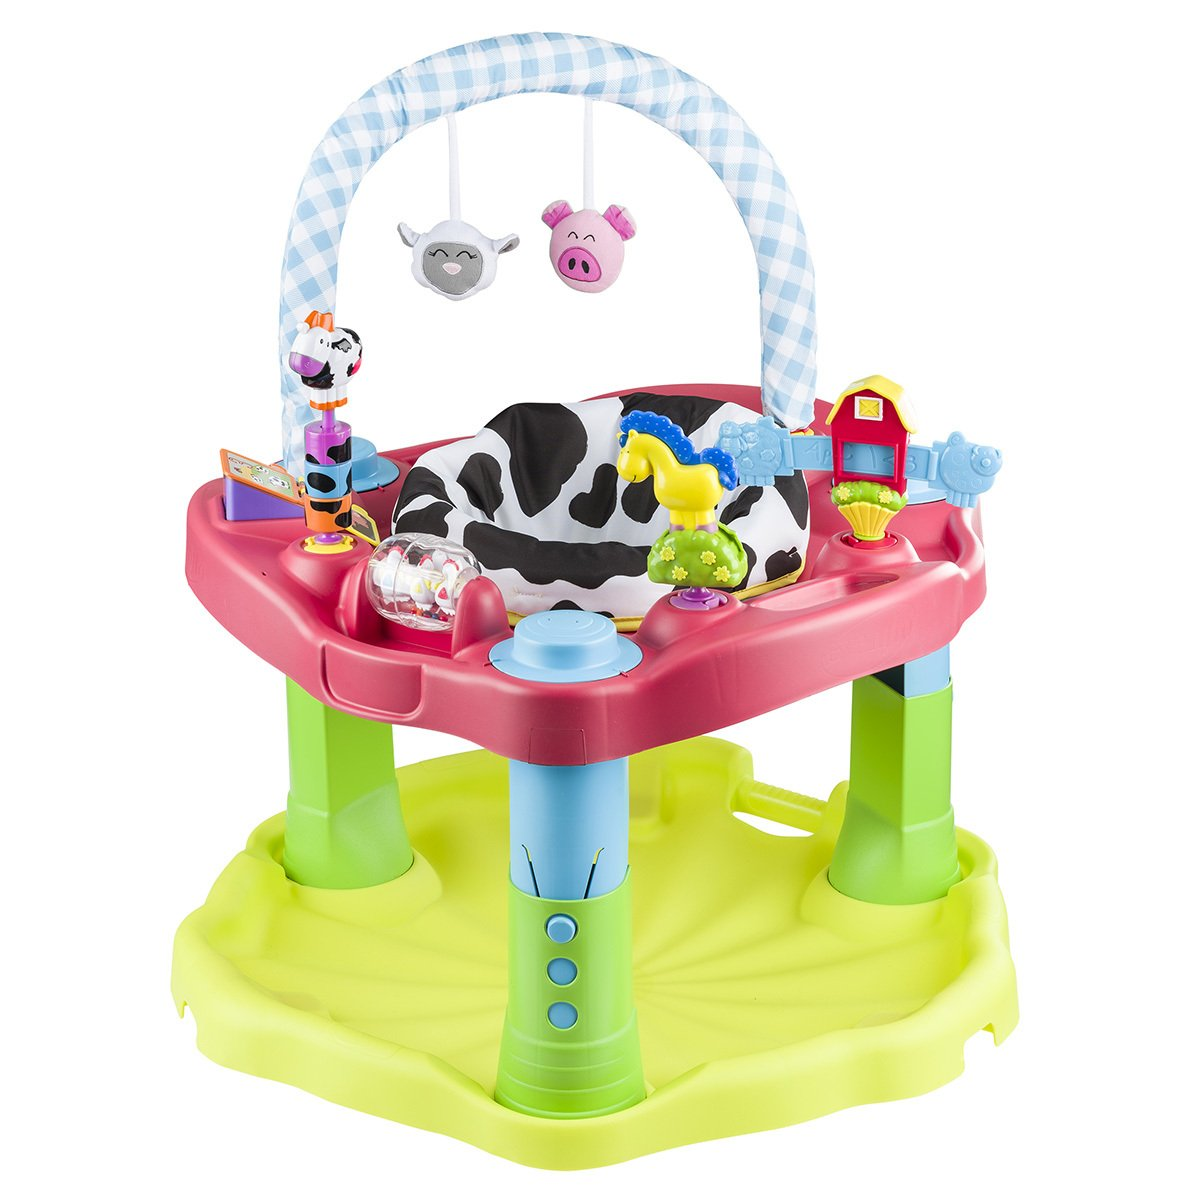 Evenflo Exersaucer Bounce and Learn Sweet Tea, Party 6164920